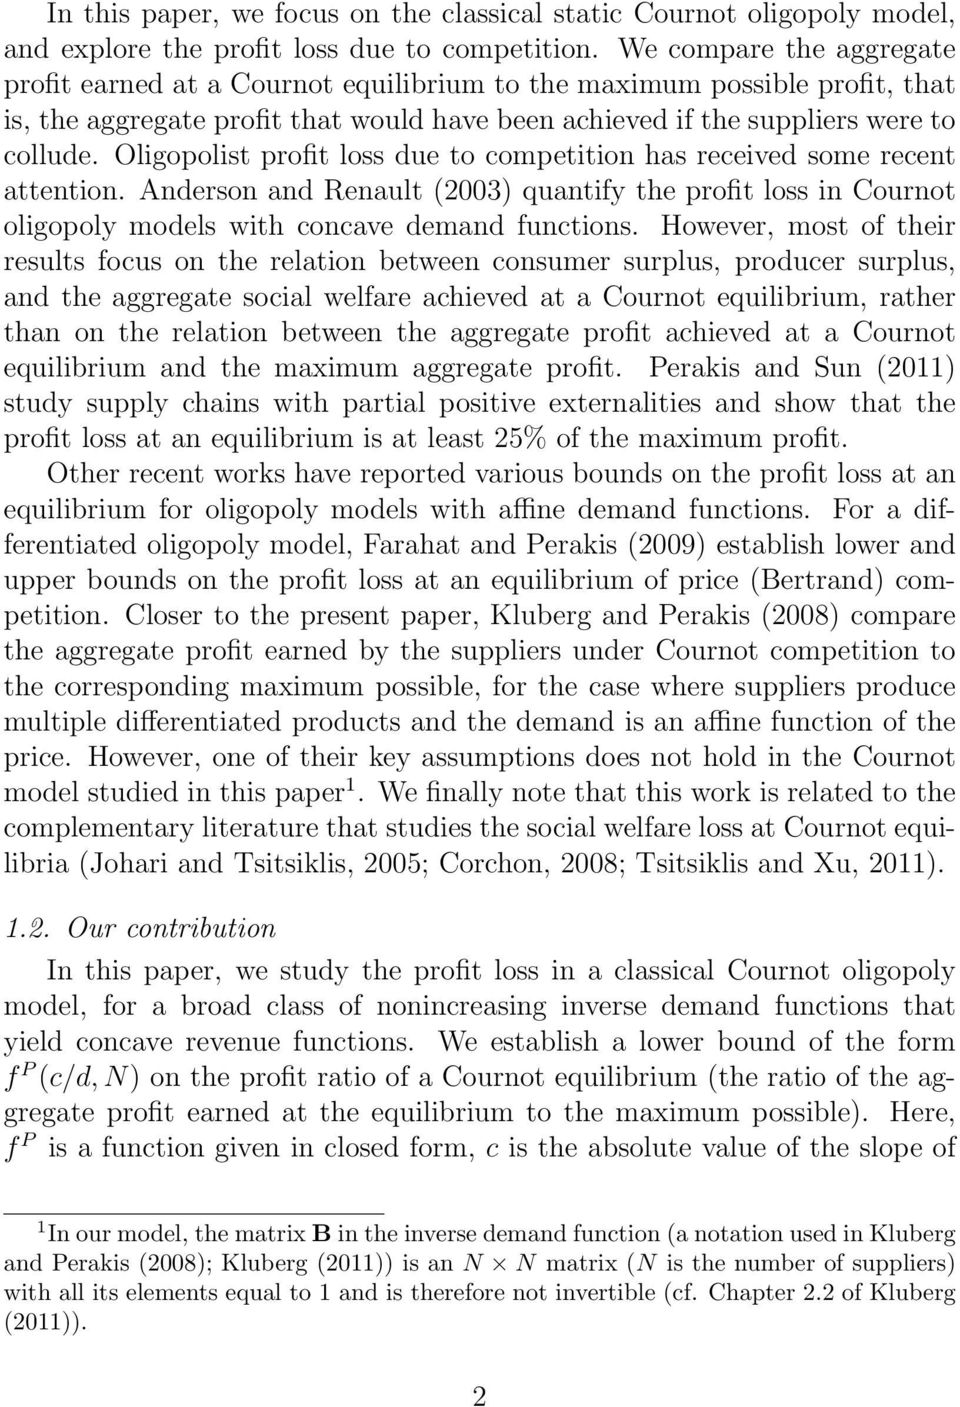 Oligopolist profit loss due to competition has received some recent attention. Anderson and Renault (2003) quantify the profit loss in Cournot oligopoly models with concave demand functions.